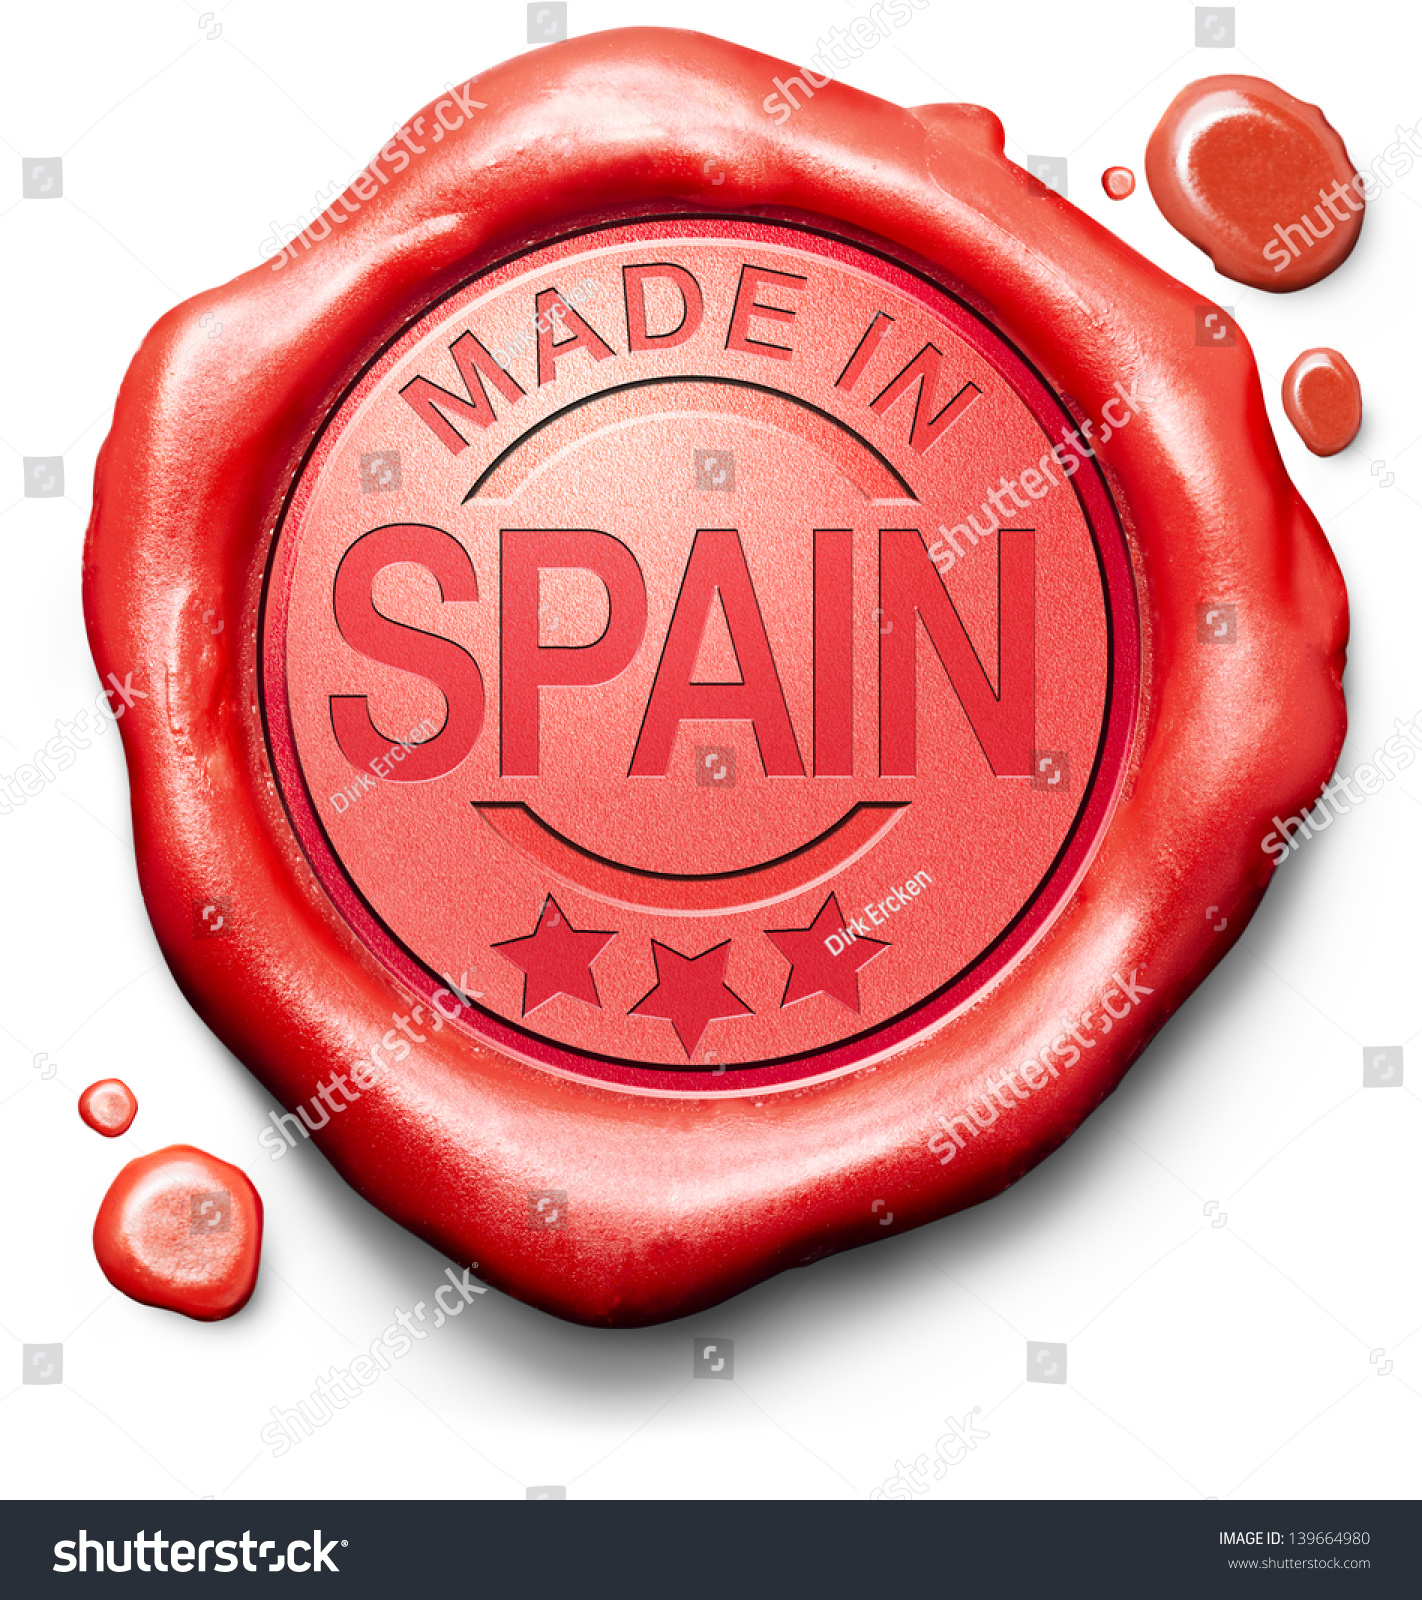 Made In Spain Original Product Buy Local Buy Authentic Spanish Quality Label Red Wax Stamp Seal Imagen de archivo (stock) 139664980 : Shutterstock1422 x 1600 jpeg 1111kB